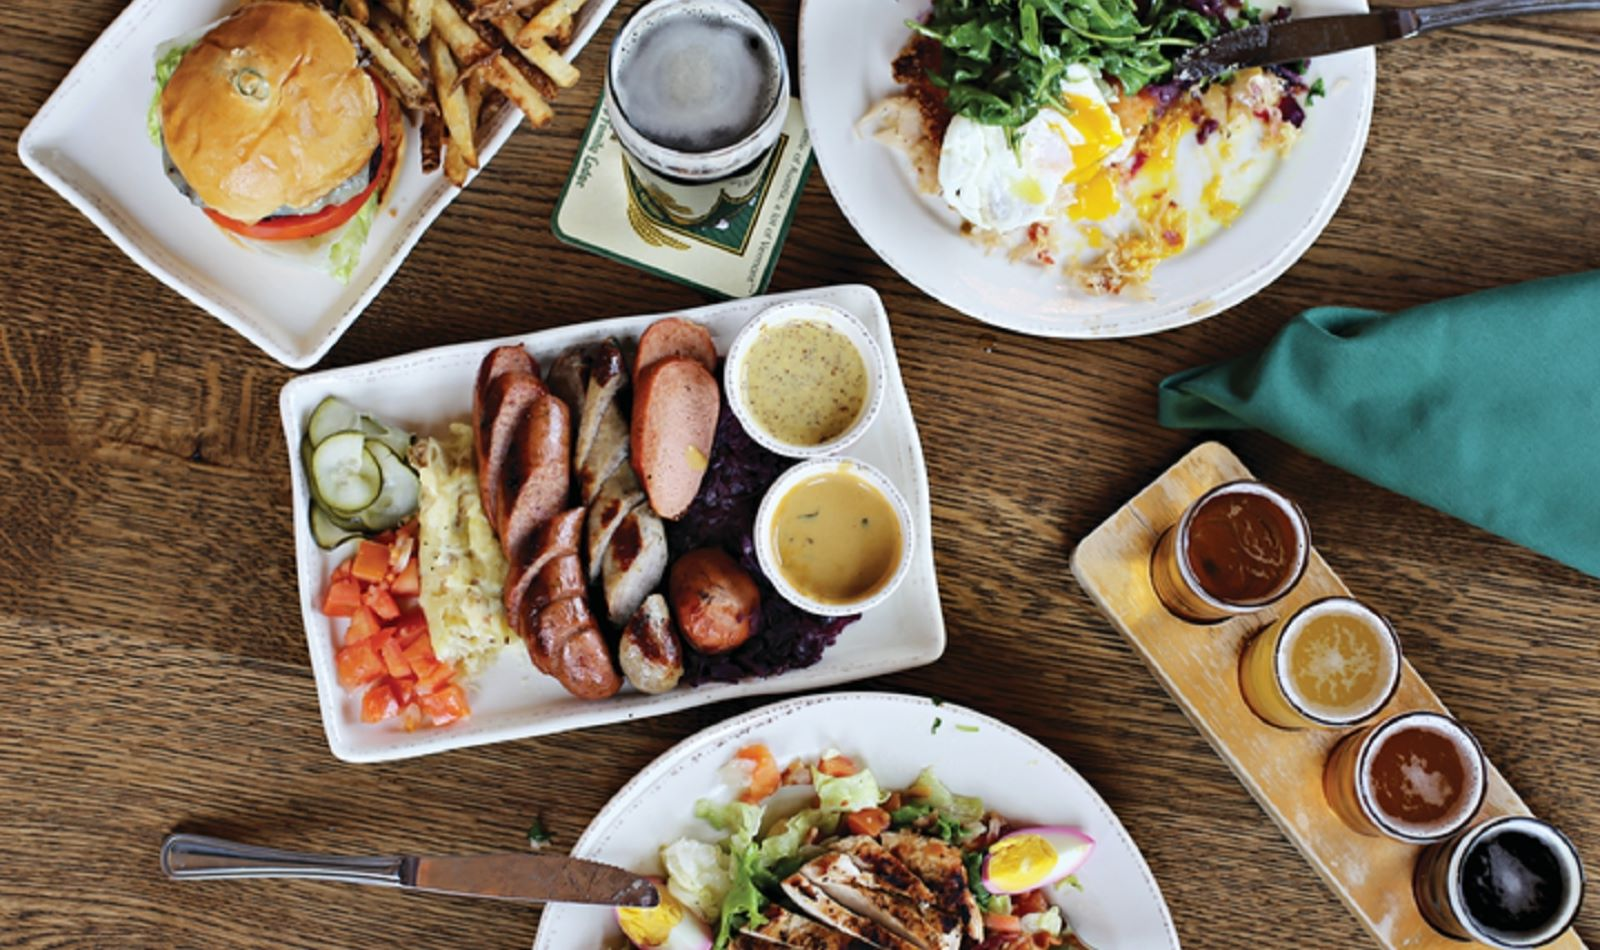 bierhall food dishes at Trapp Family Lodge